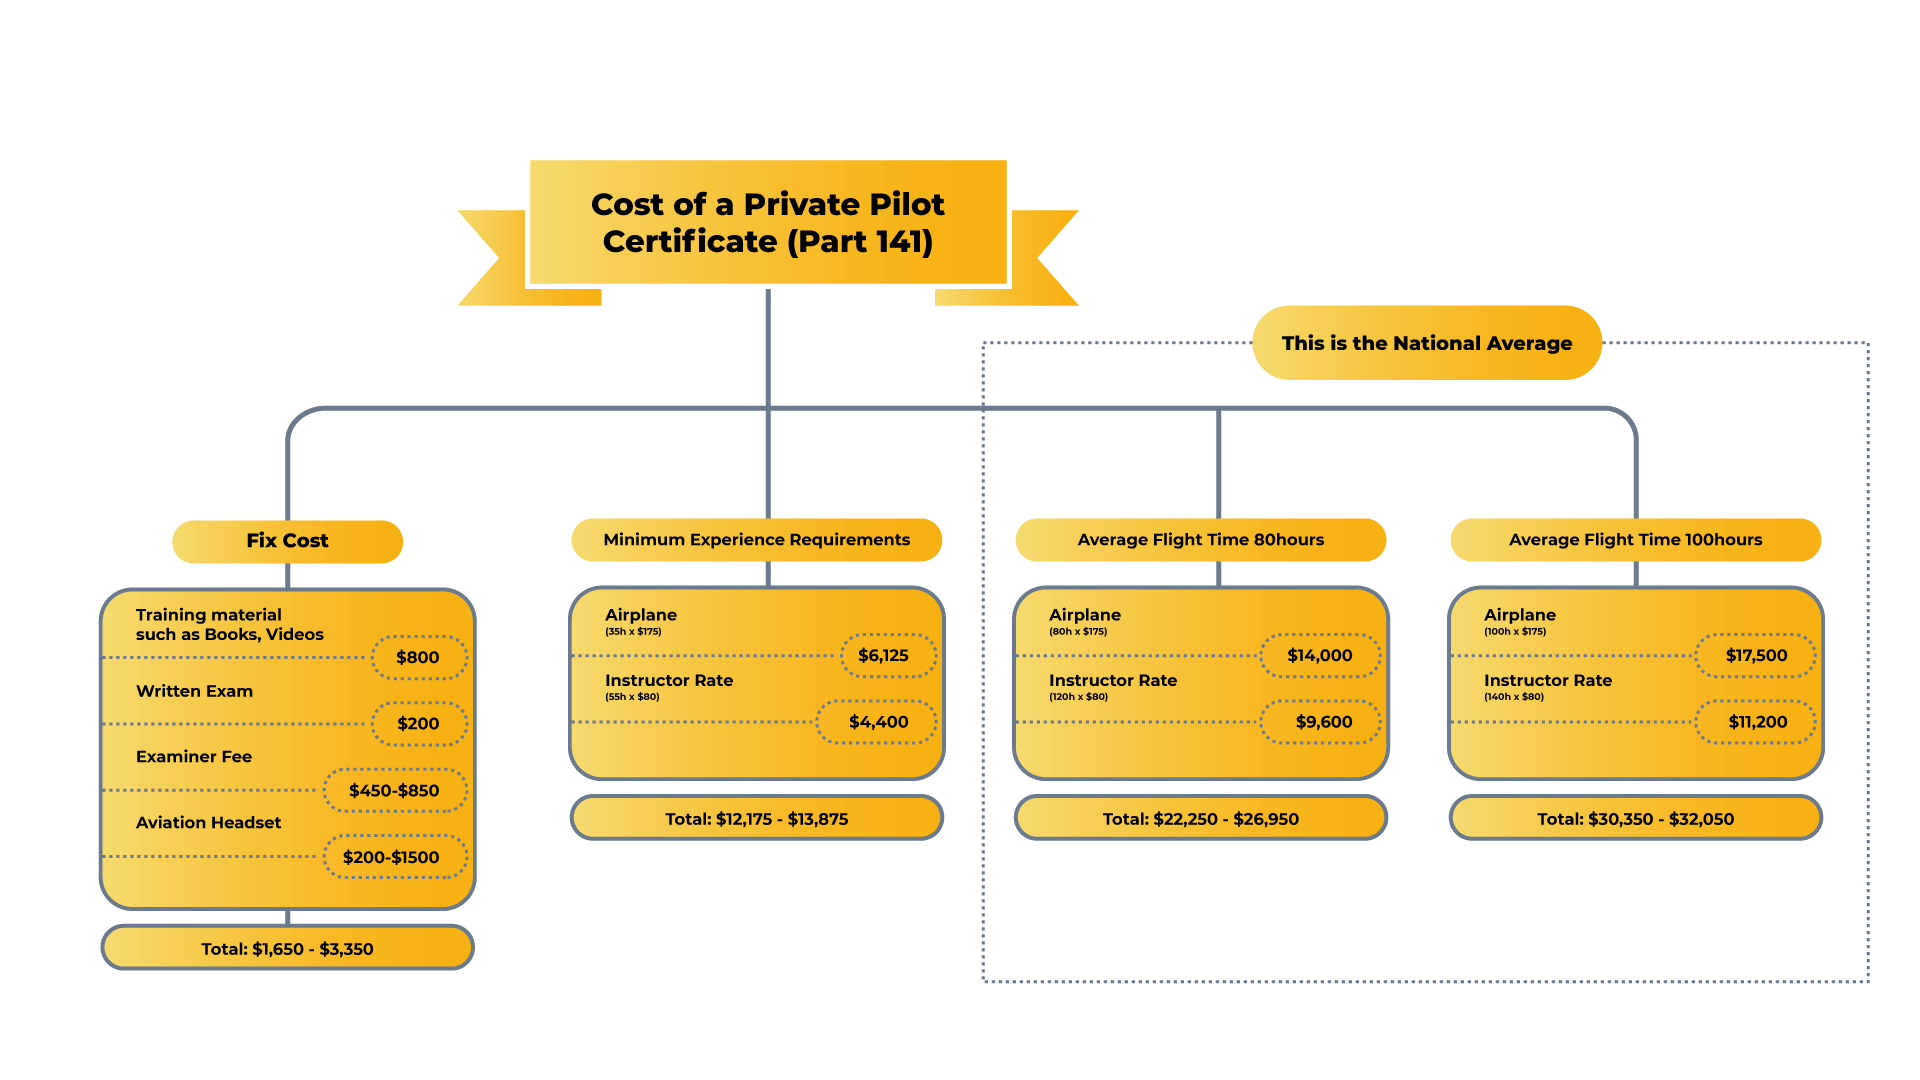 Cost_of_Private_Pilot_certificate_141__New_York_City